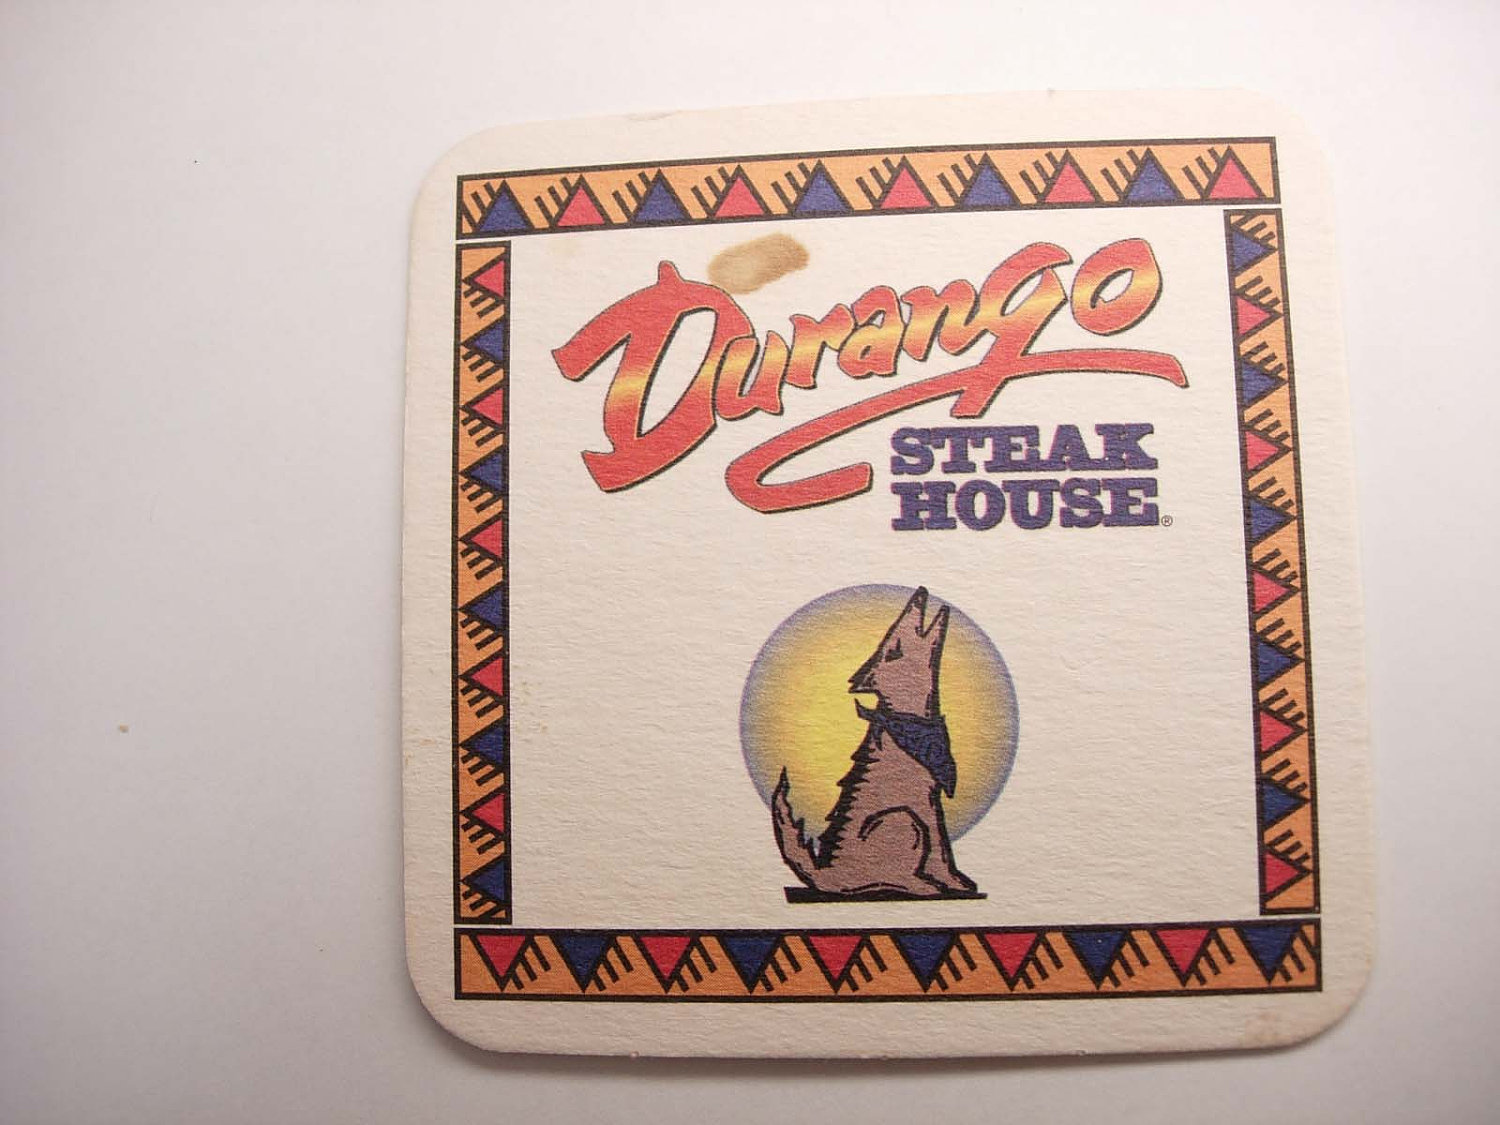 Vintage Durango Steak House Coaster Collectors Restaurants Business